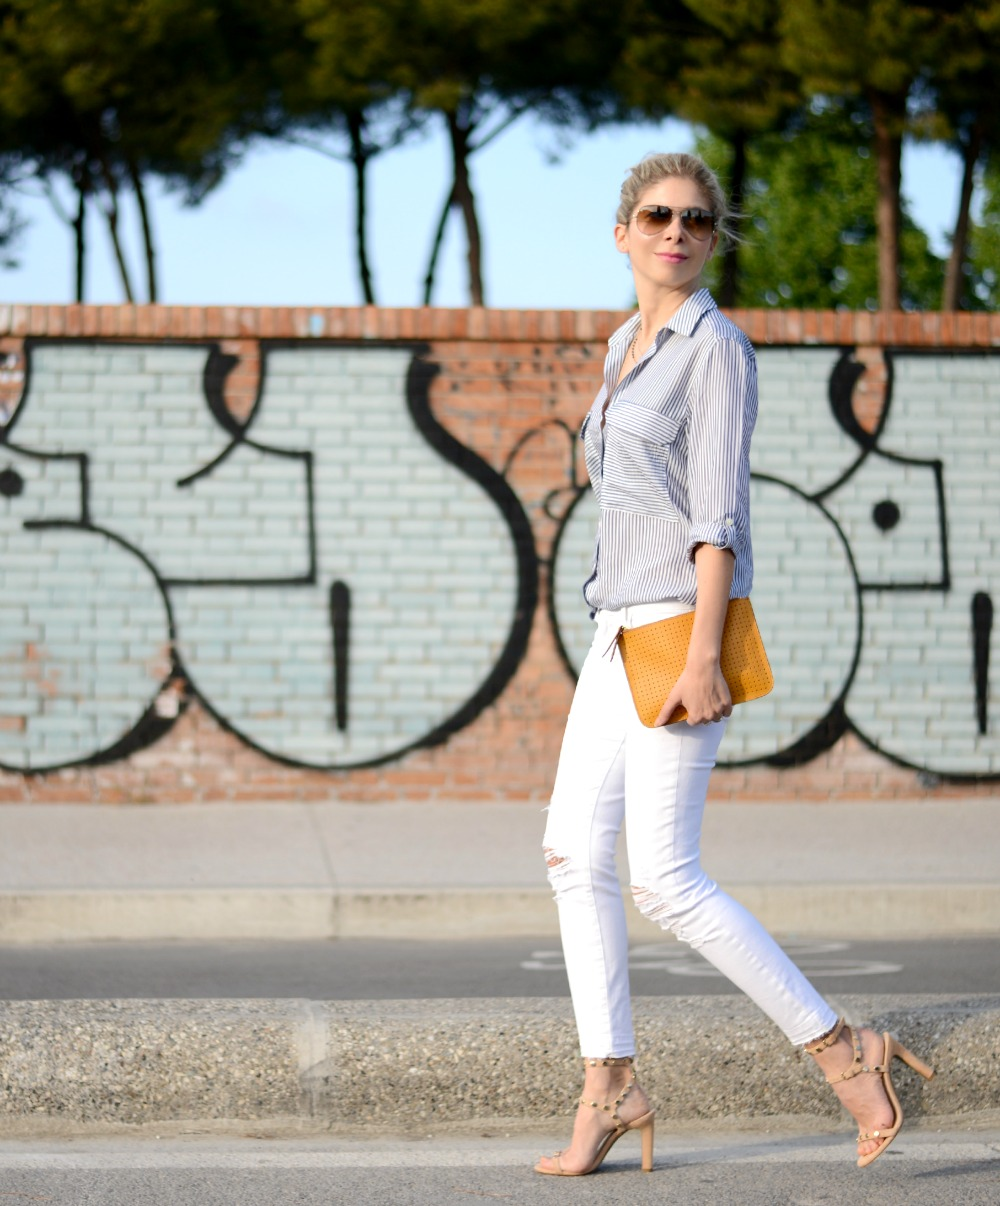 Brand white ripped jeans, stripped shirt, nude sandals, street style.